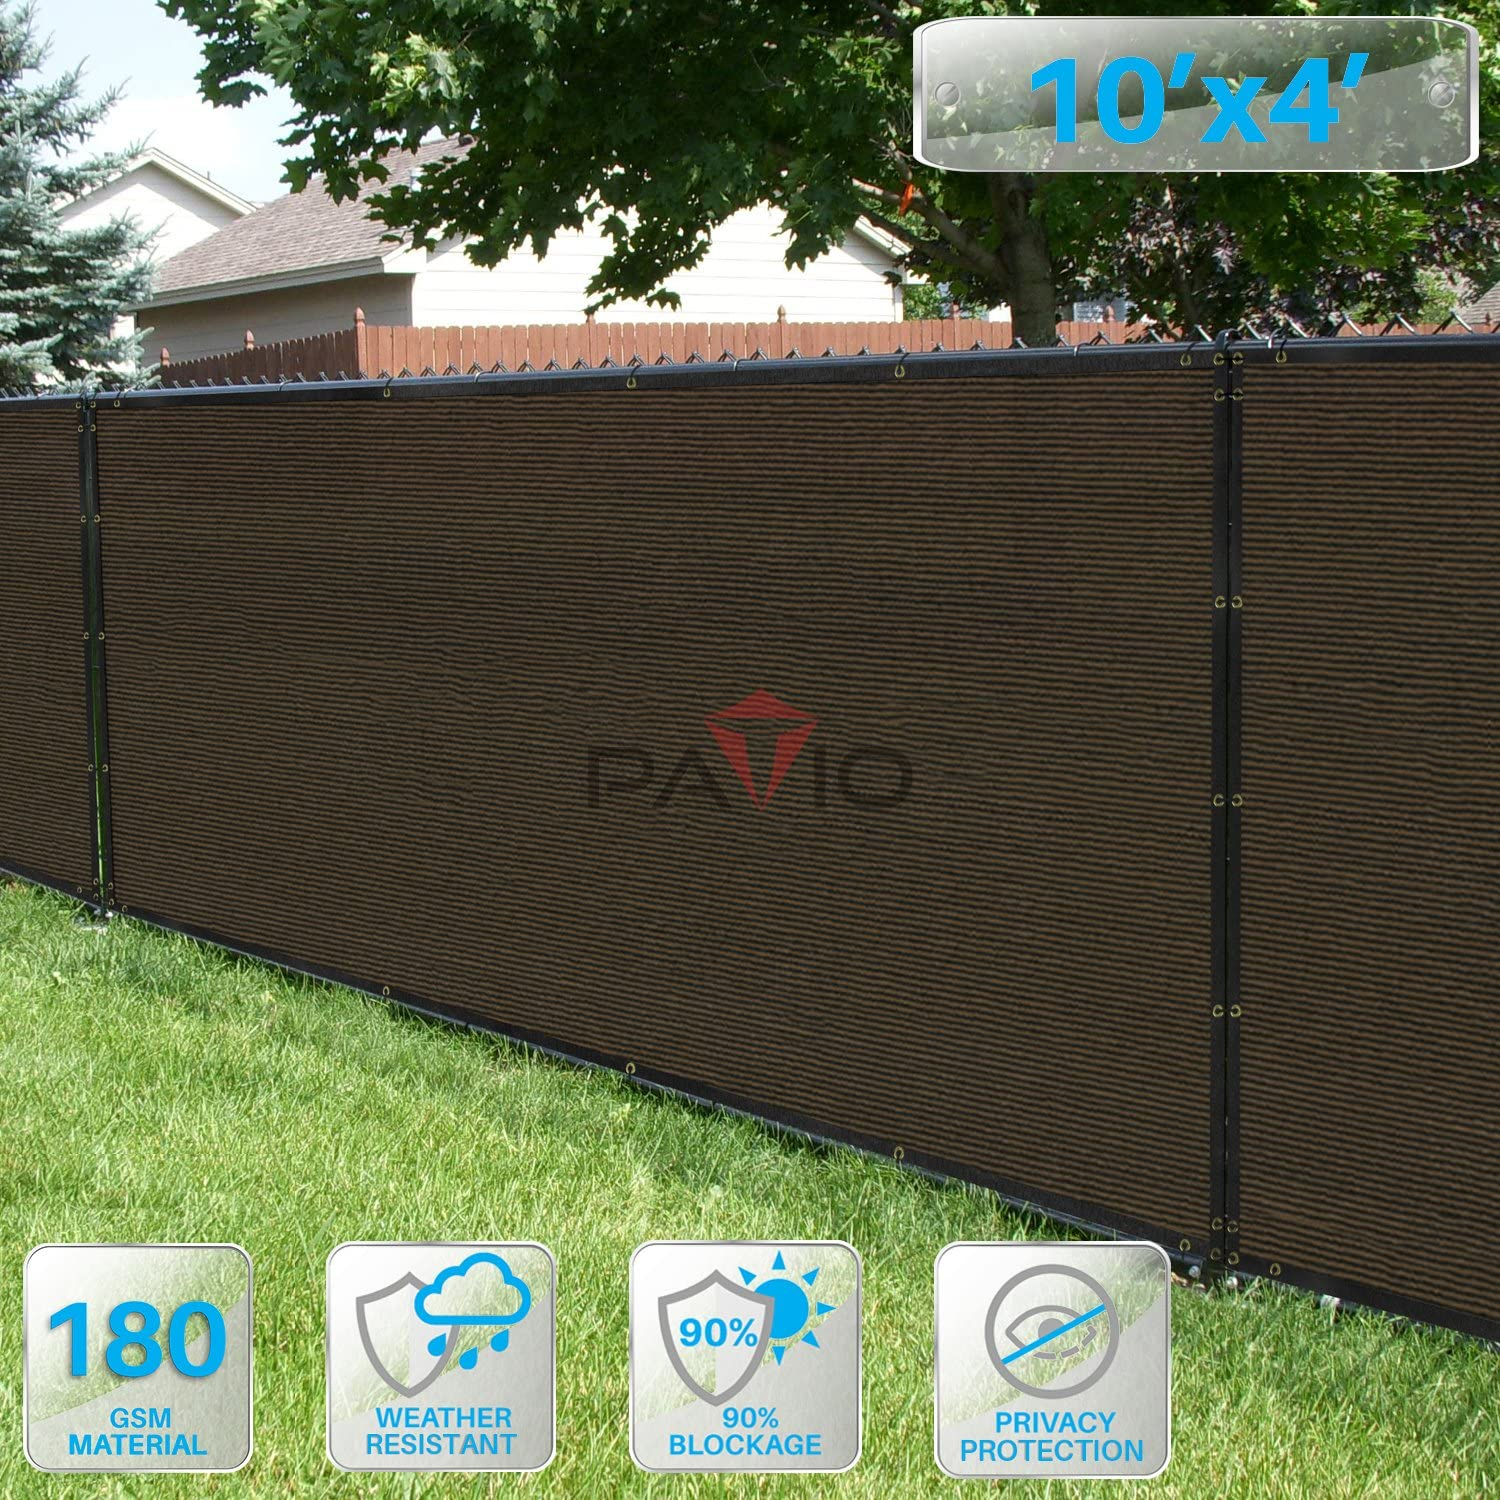 Patio Fence Privacy Screen 10 x 4 , Pergola Shade Cover Canopy Sun Block, Heavy Duty Fence Privacy Netting, Commercial Grade Privacy Fencing, 180 GSM, 90 Privacy Blockage Brown